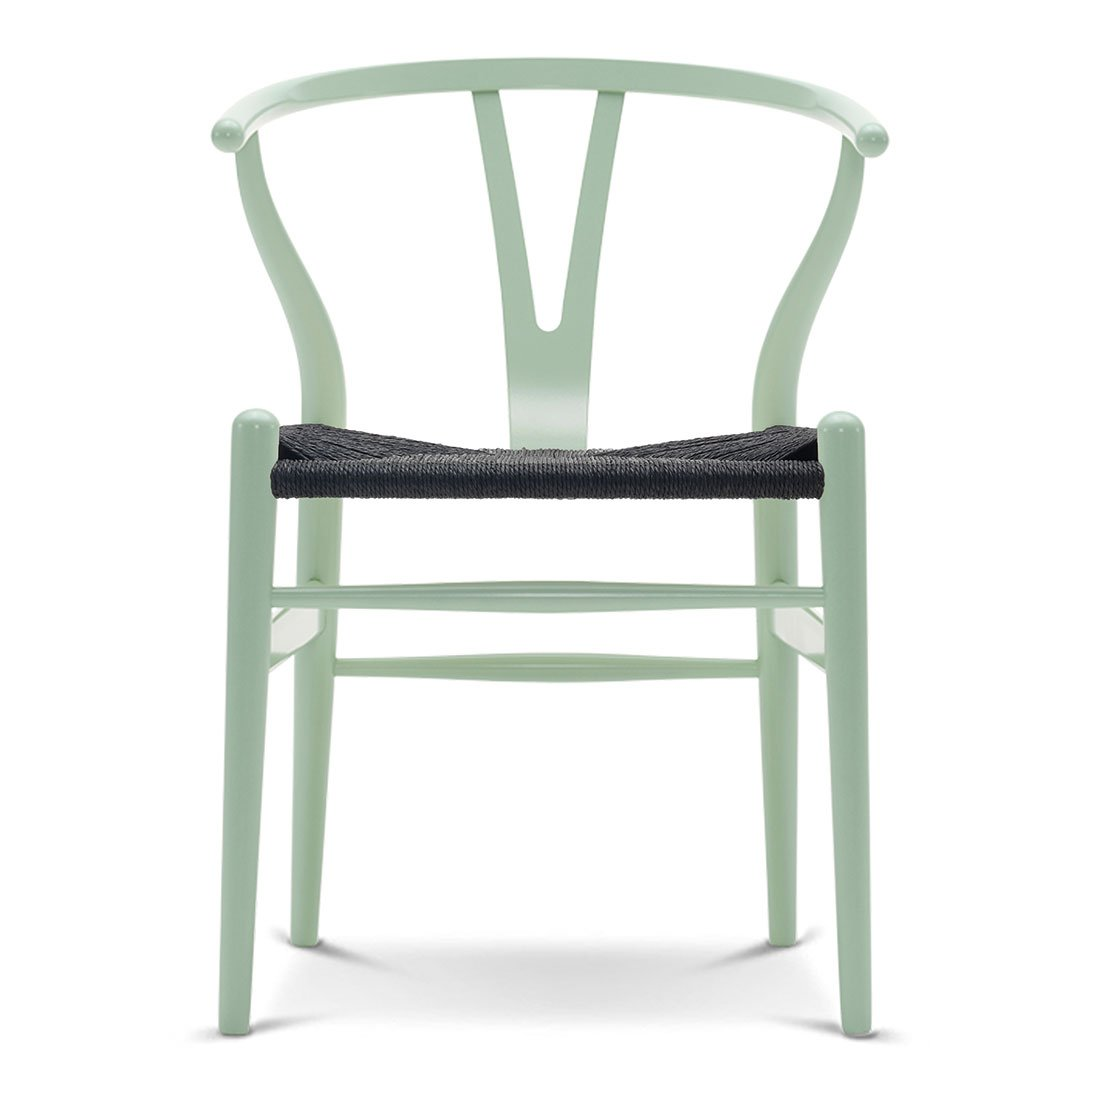 Carl Hansen Wishbone Chair NCS 1020-G60Y - Zwart